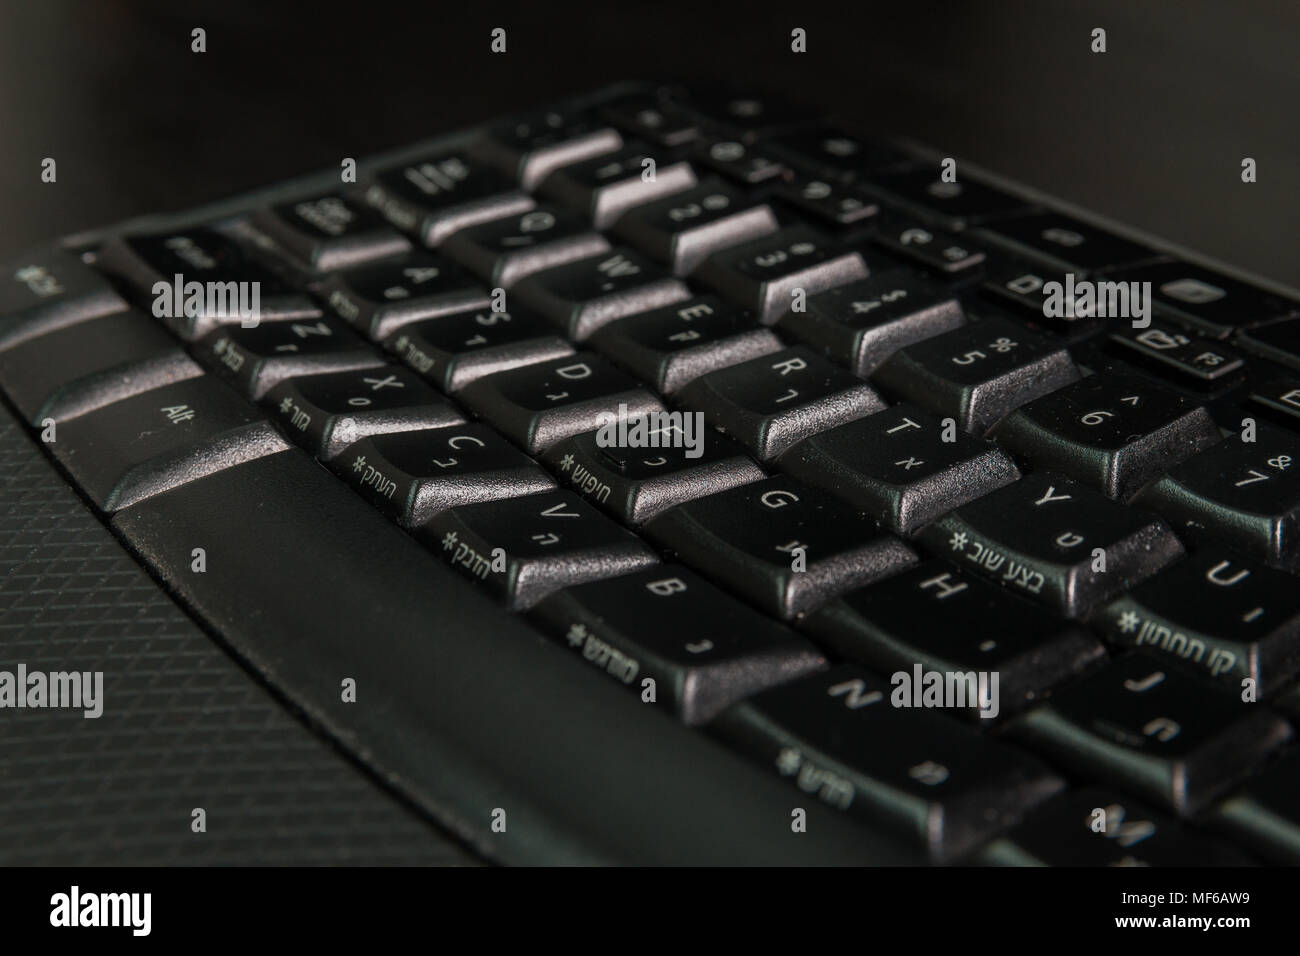 Keyboard with letters in Hebrew and English - Wireless keyboard - Close up - Stock Image